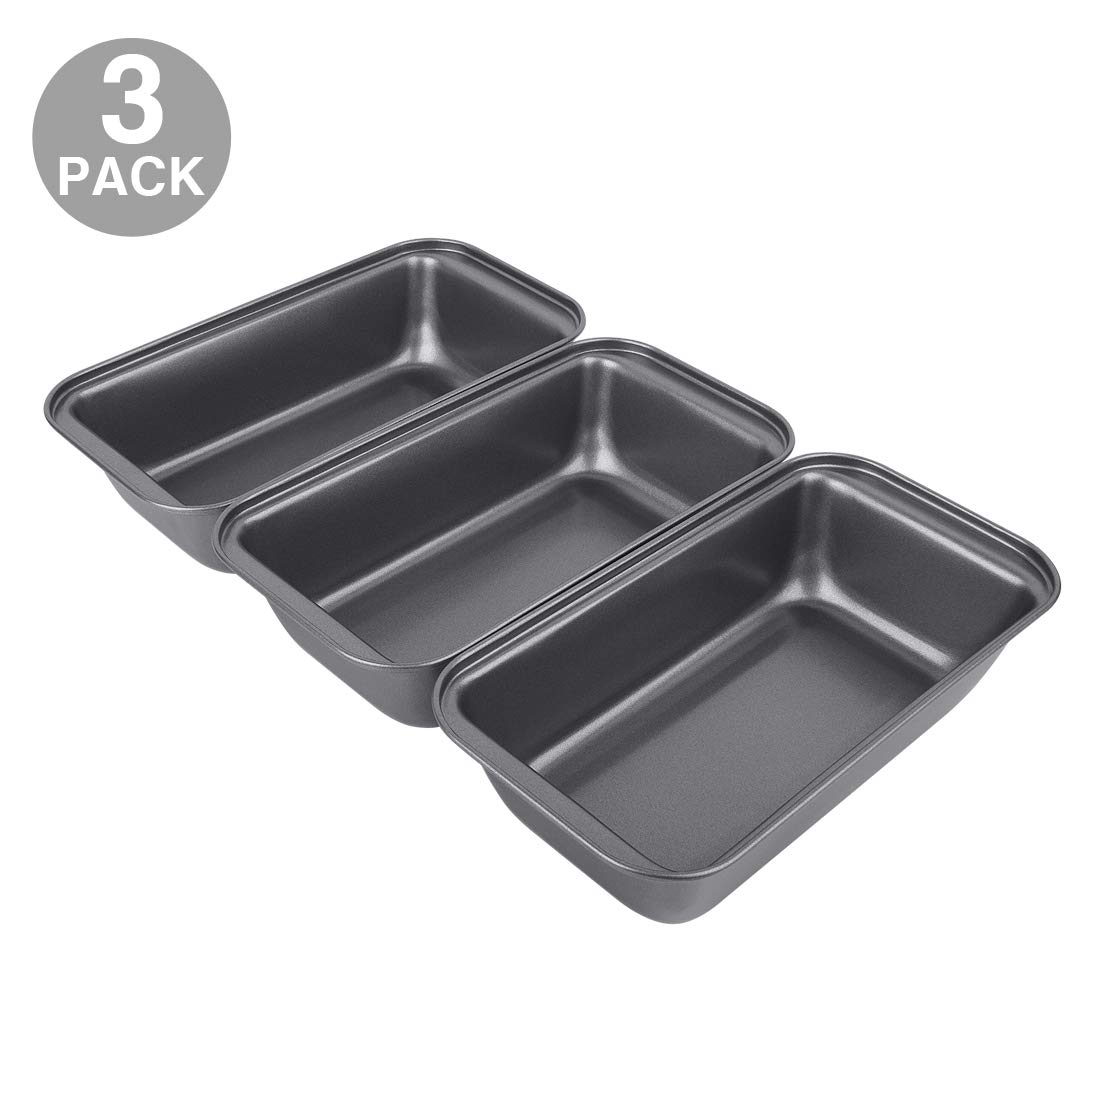 Nonstick Carbon Steel Baking Bread Pan, Large Loaf Pan, 9.5 x 5 Inch, Set of 3